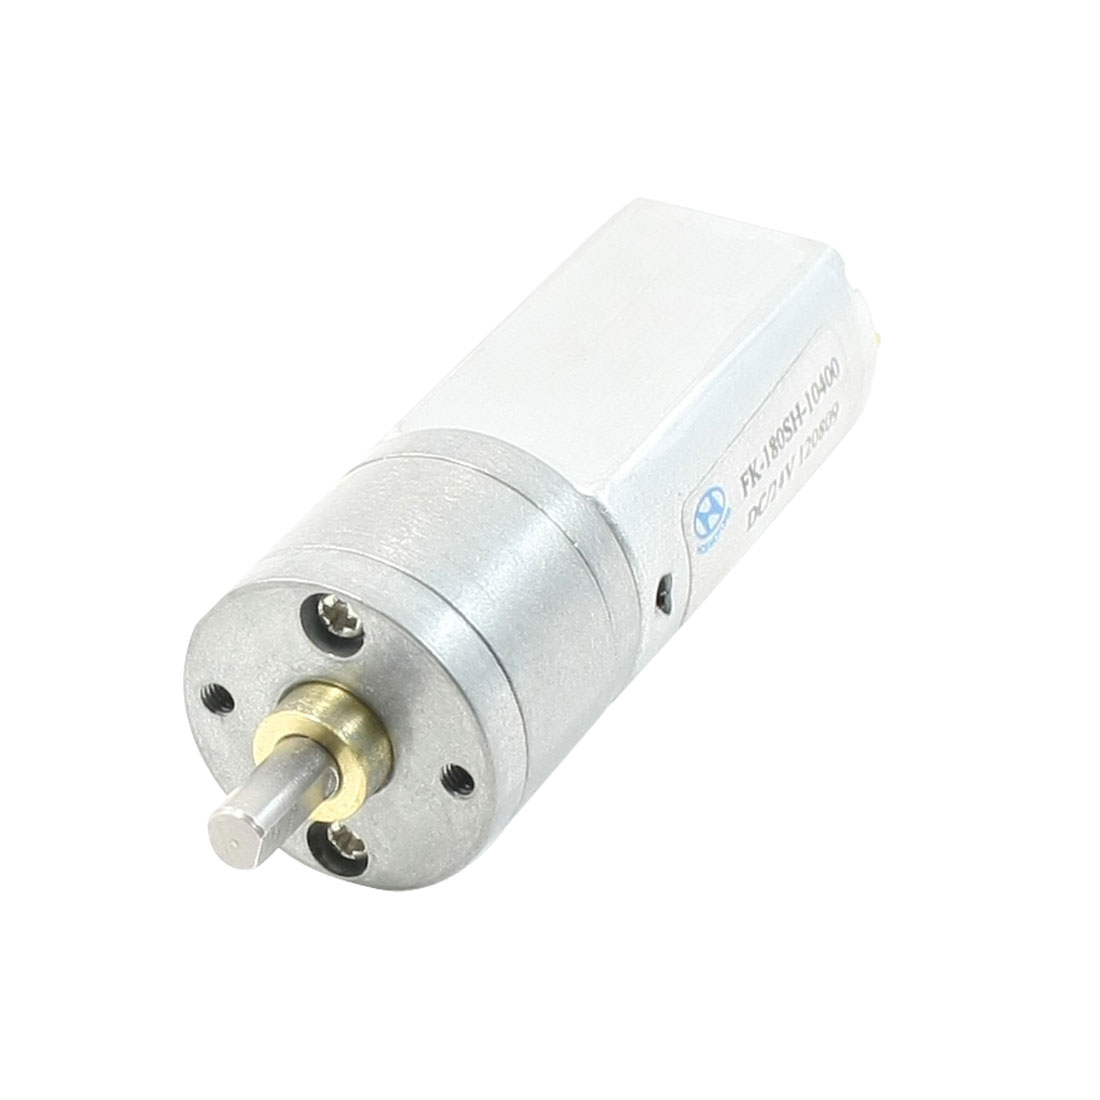 140RPM Rotary Speed DC 24V High Torque 3.5mm Dia Shaft Magnetic Geared Motor